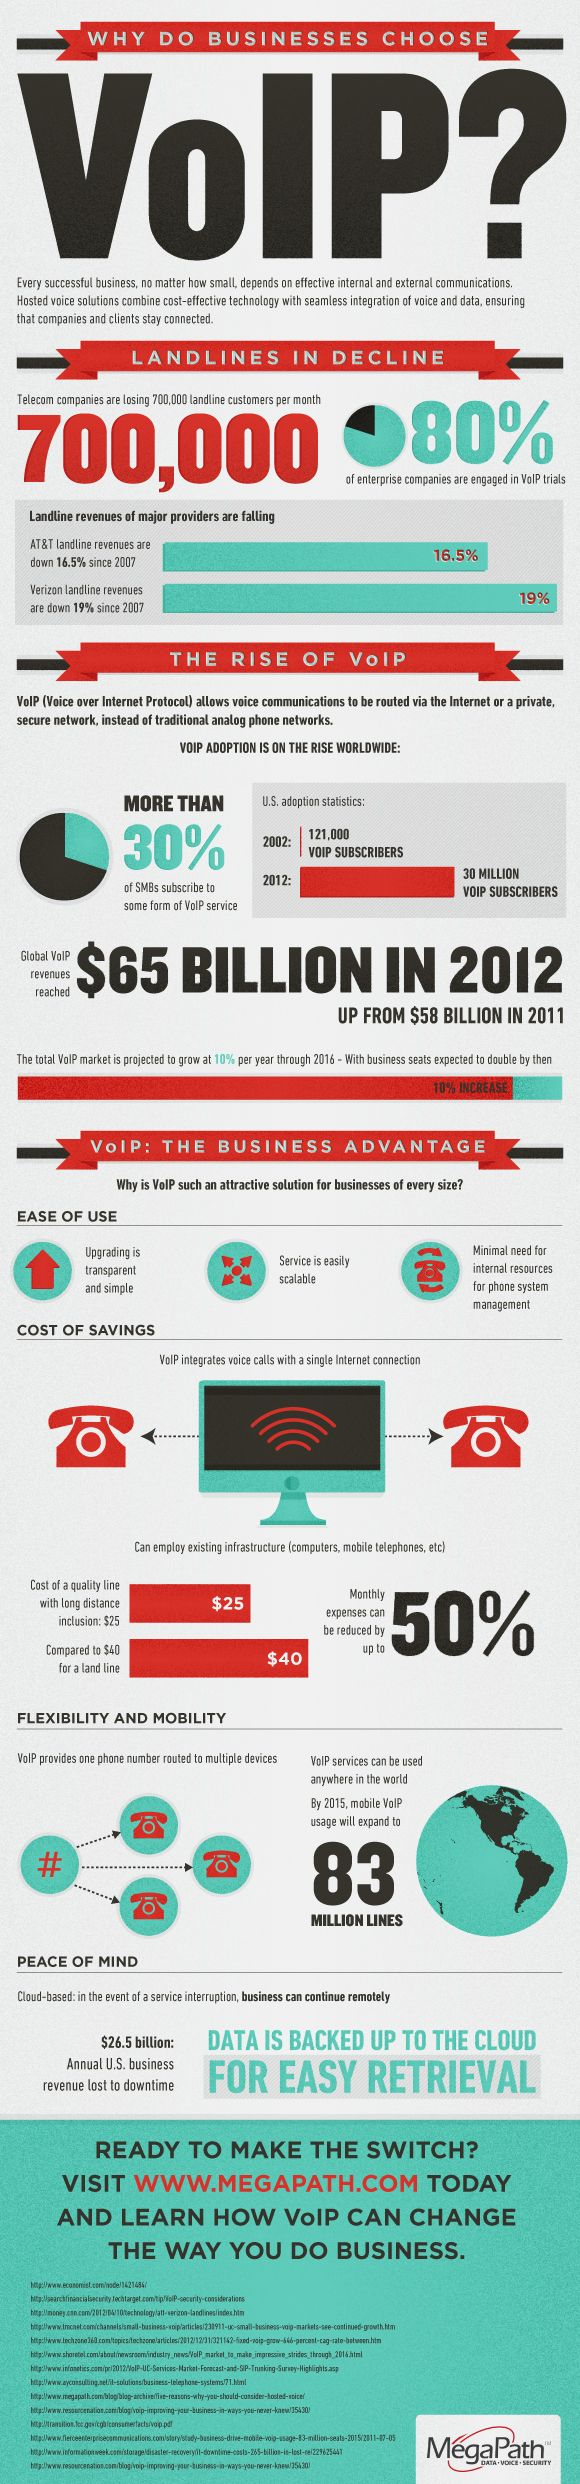 Businesses can reduce their monthly expenses up to 50% with a hosted phone system -- awesome stat!